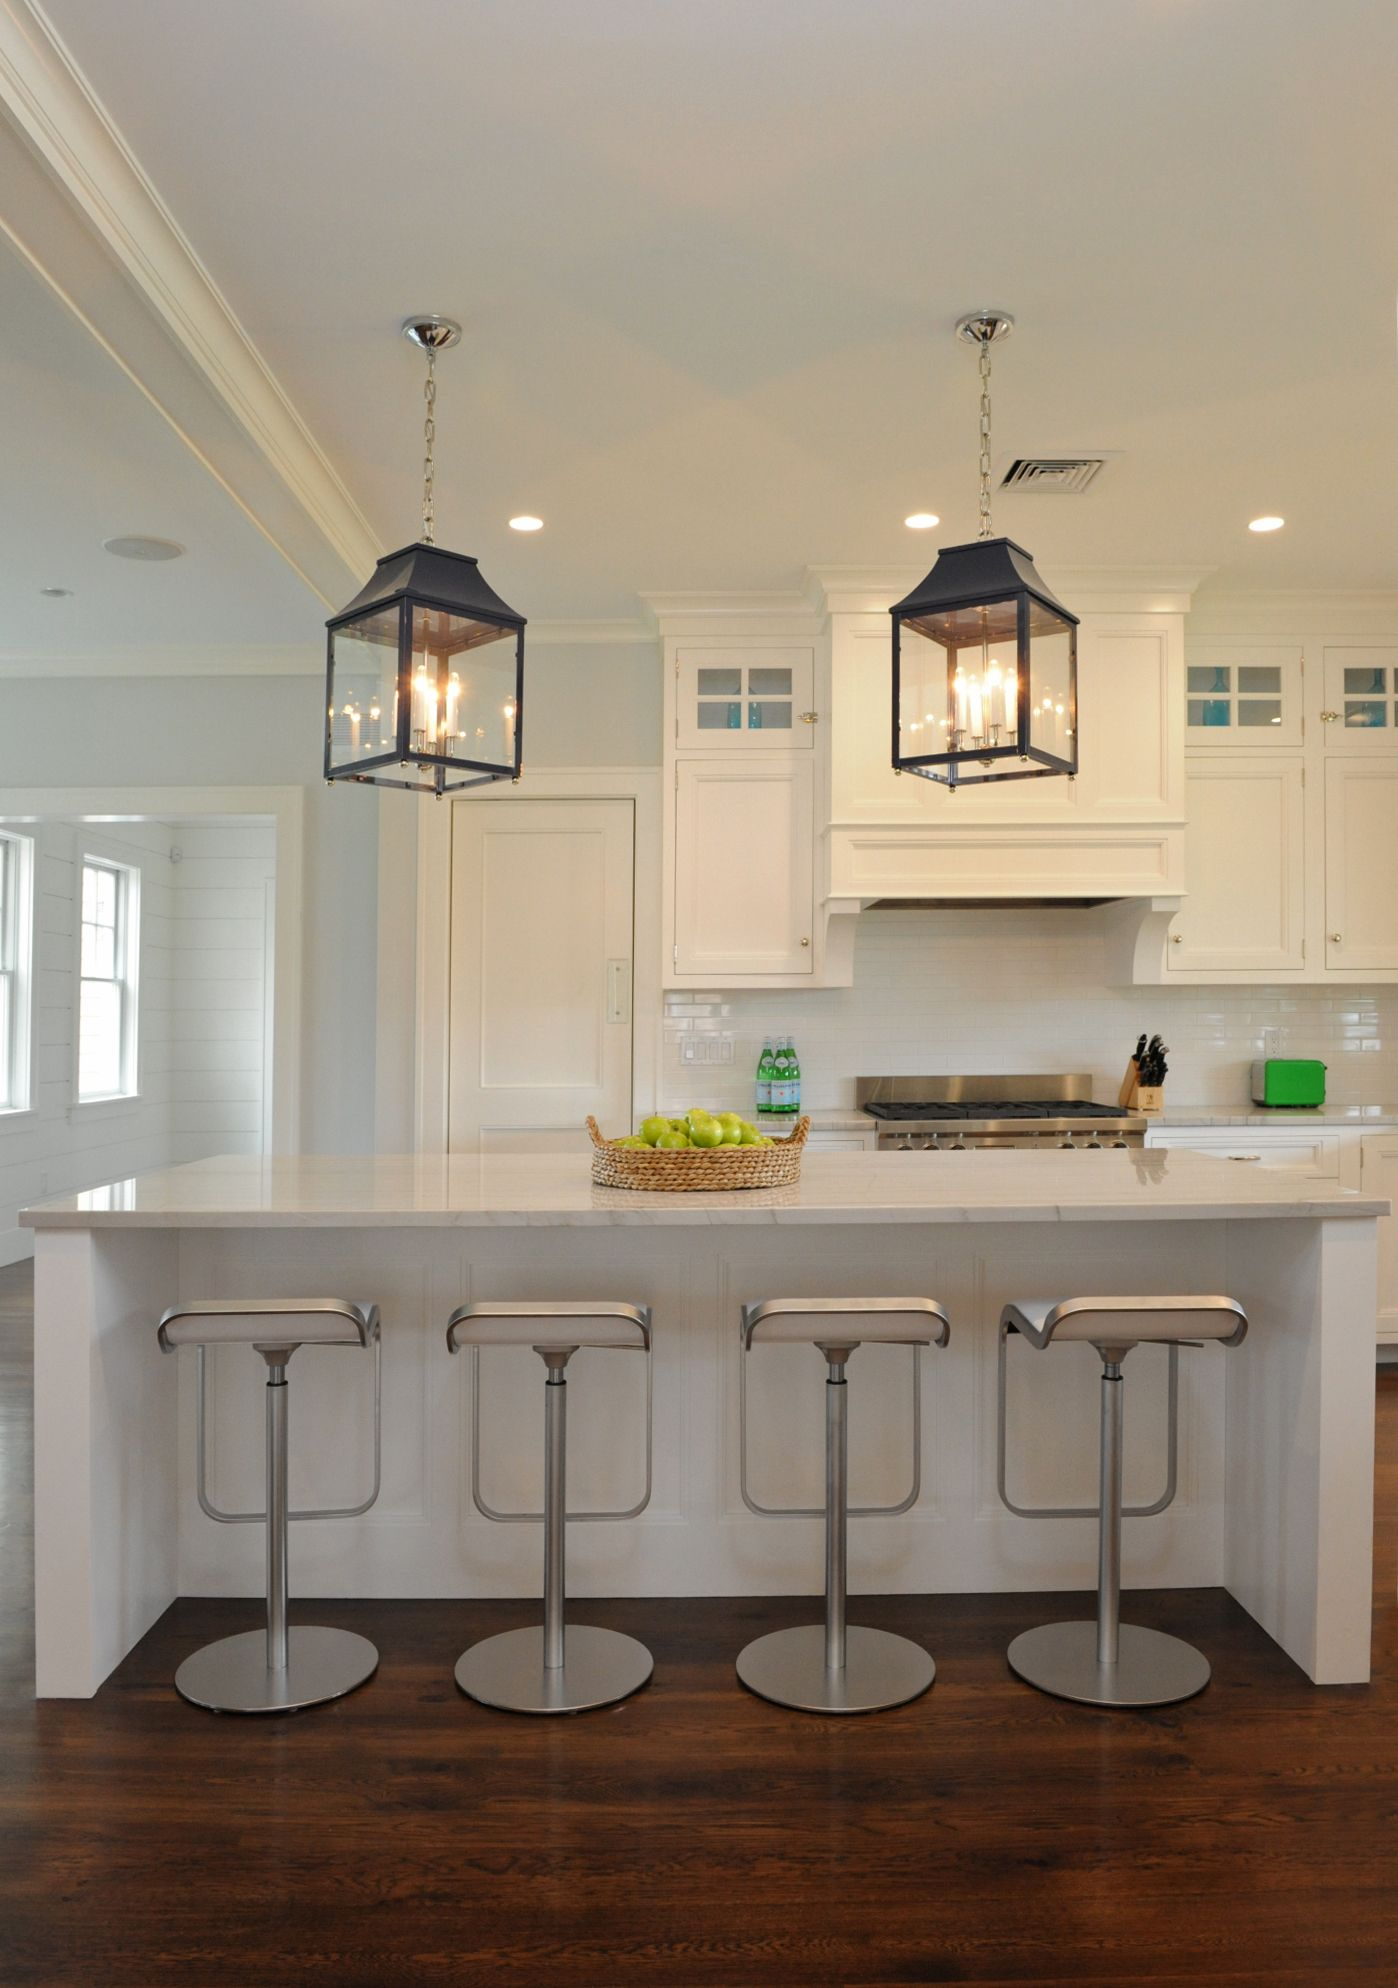 Island Pendants Navy With Lamplight In Same Color Over Kitchen Unique Light Fixtures For Kitchen Design Decoration